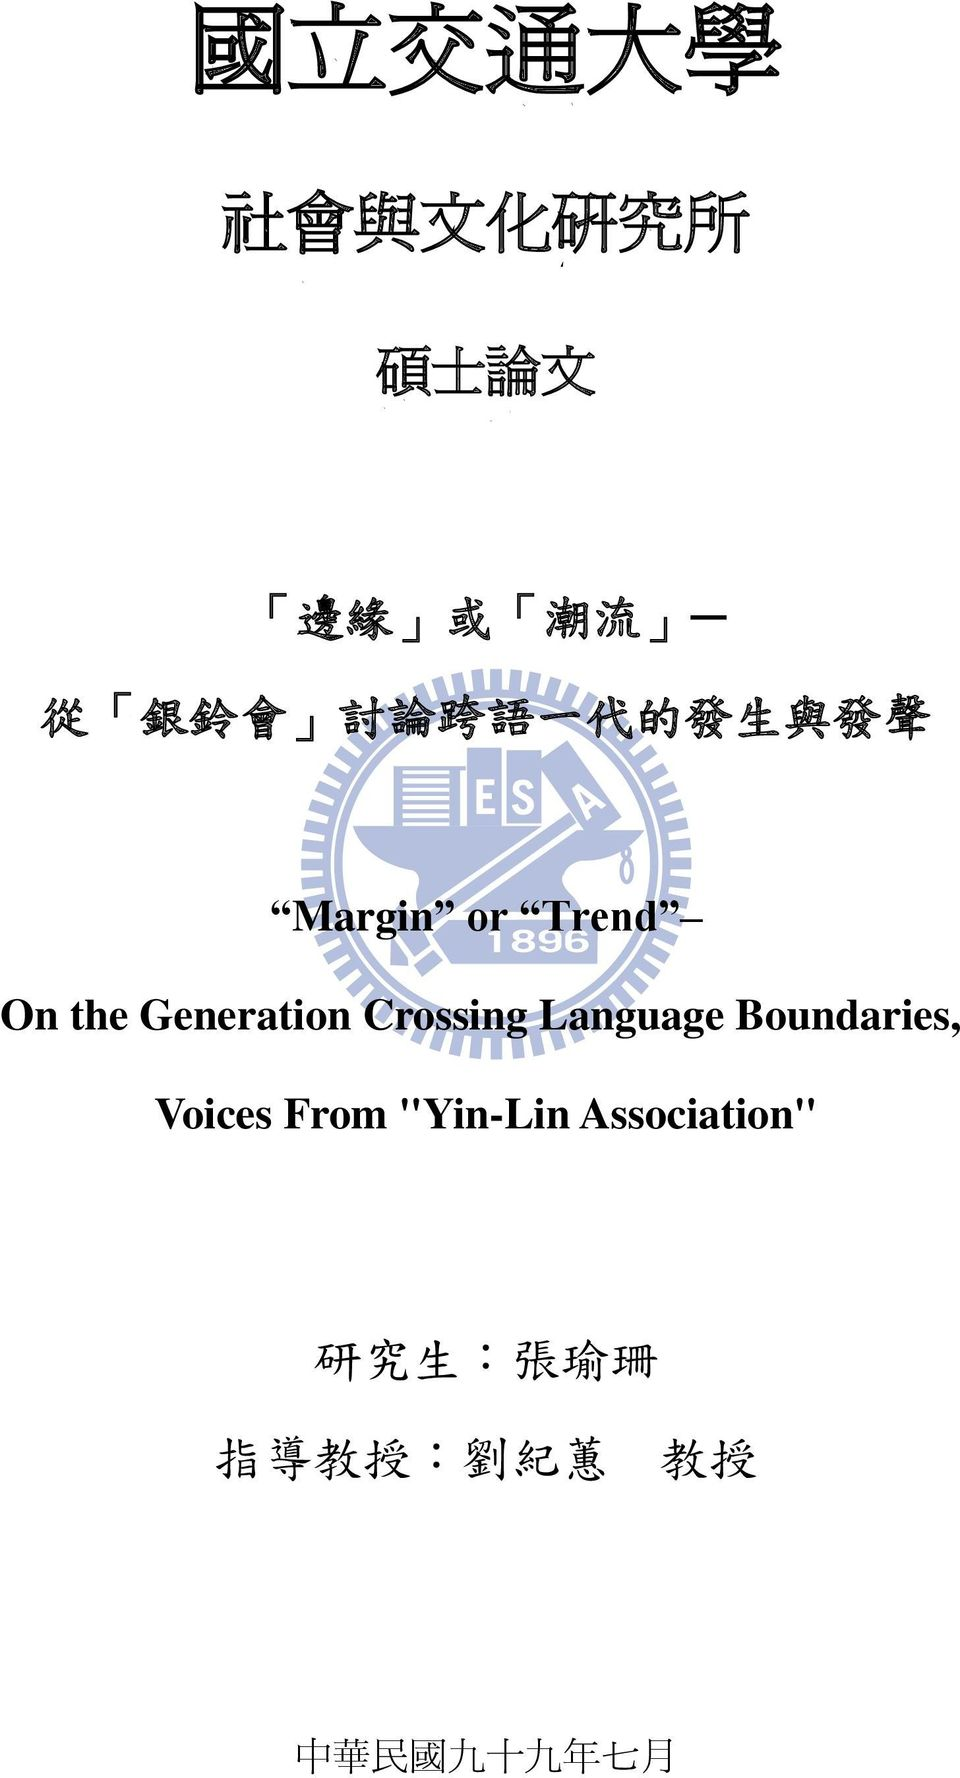 Generation Crossing Language Boundaries,